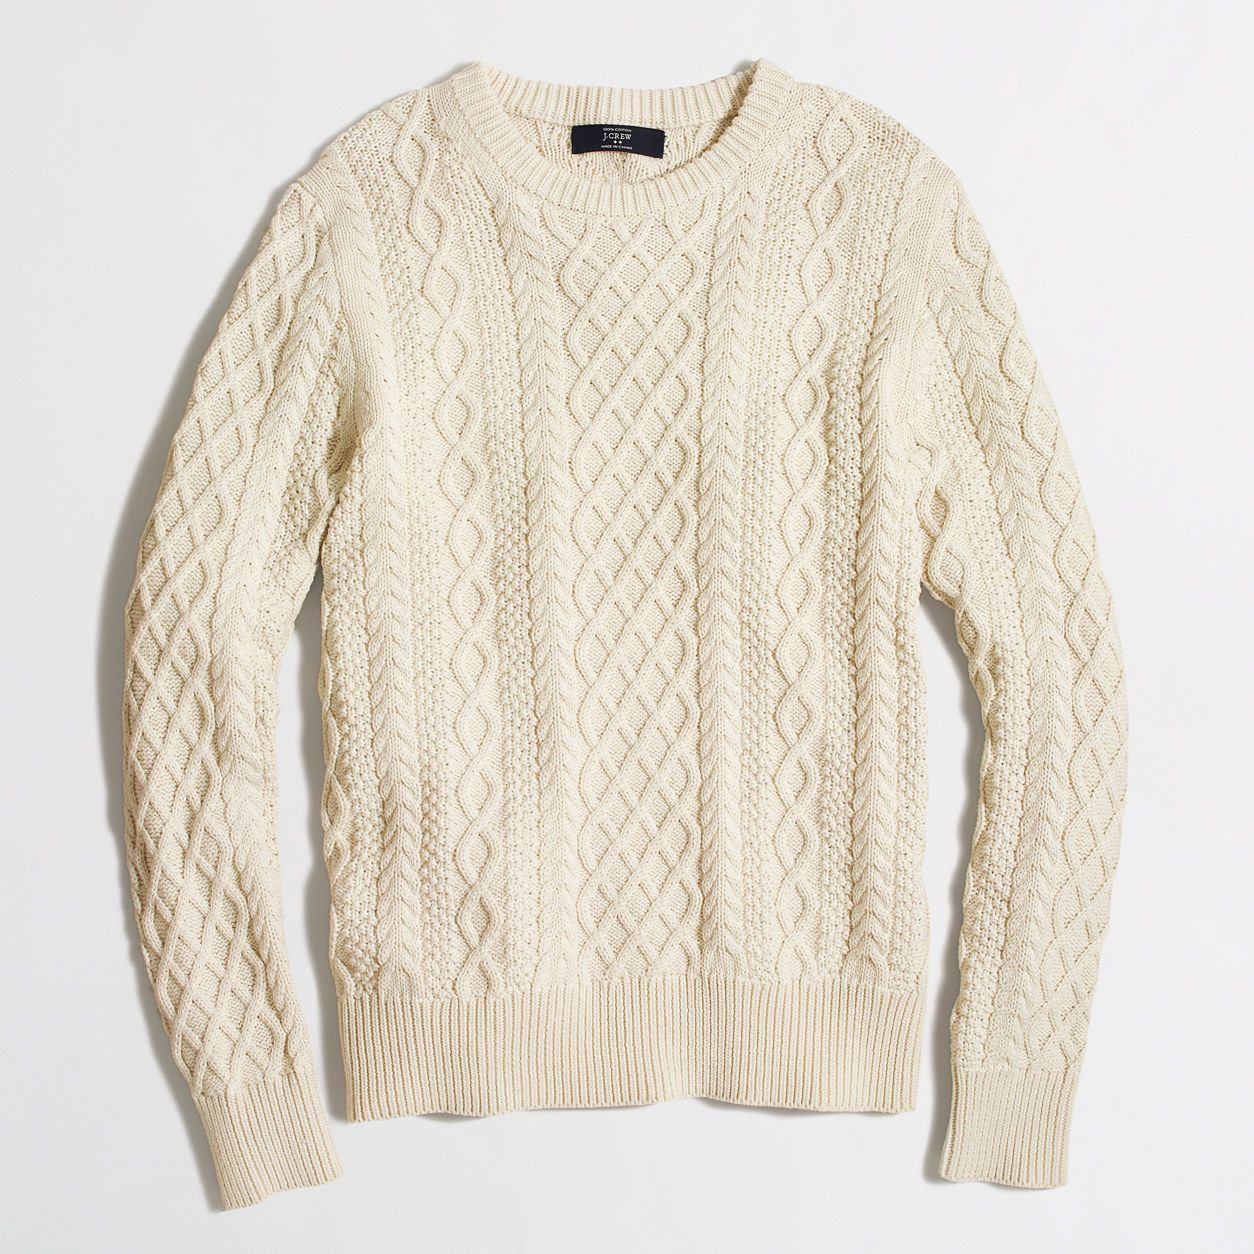 Fisherman cable crewneck sweater : Cotton | J.Crew Factory ...